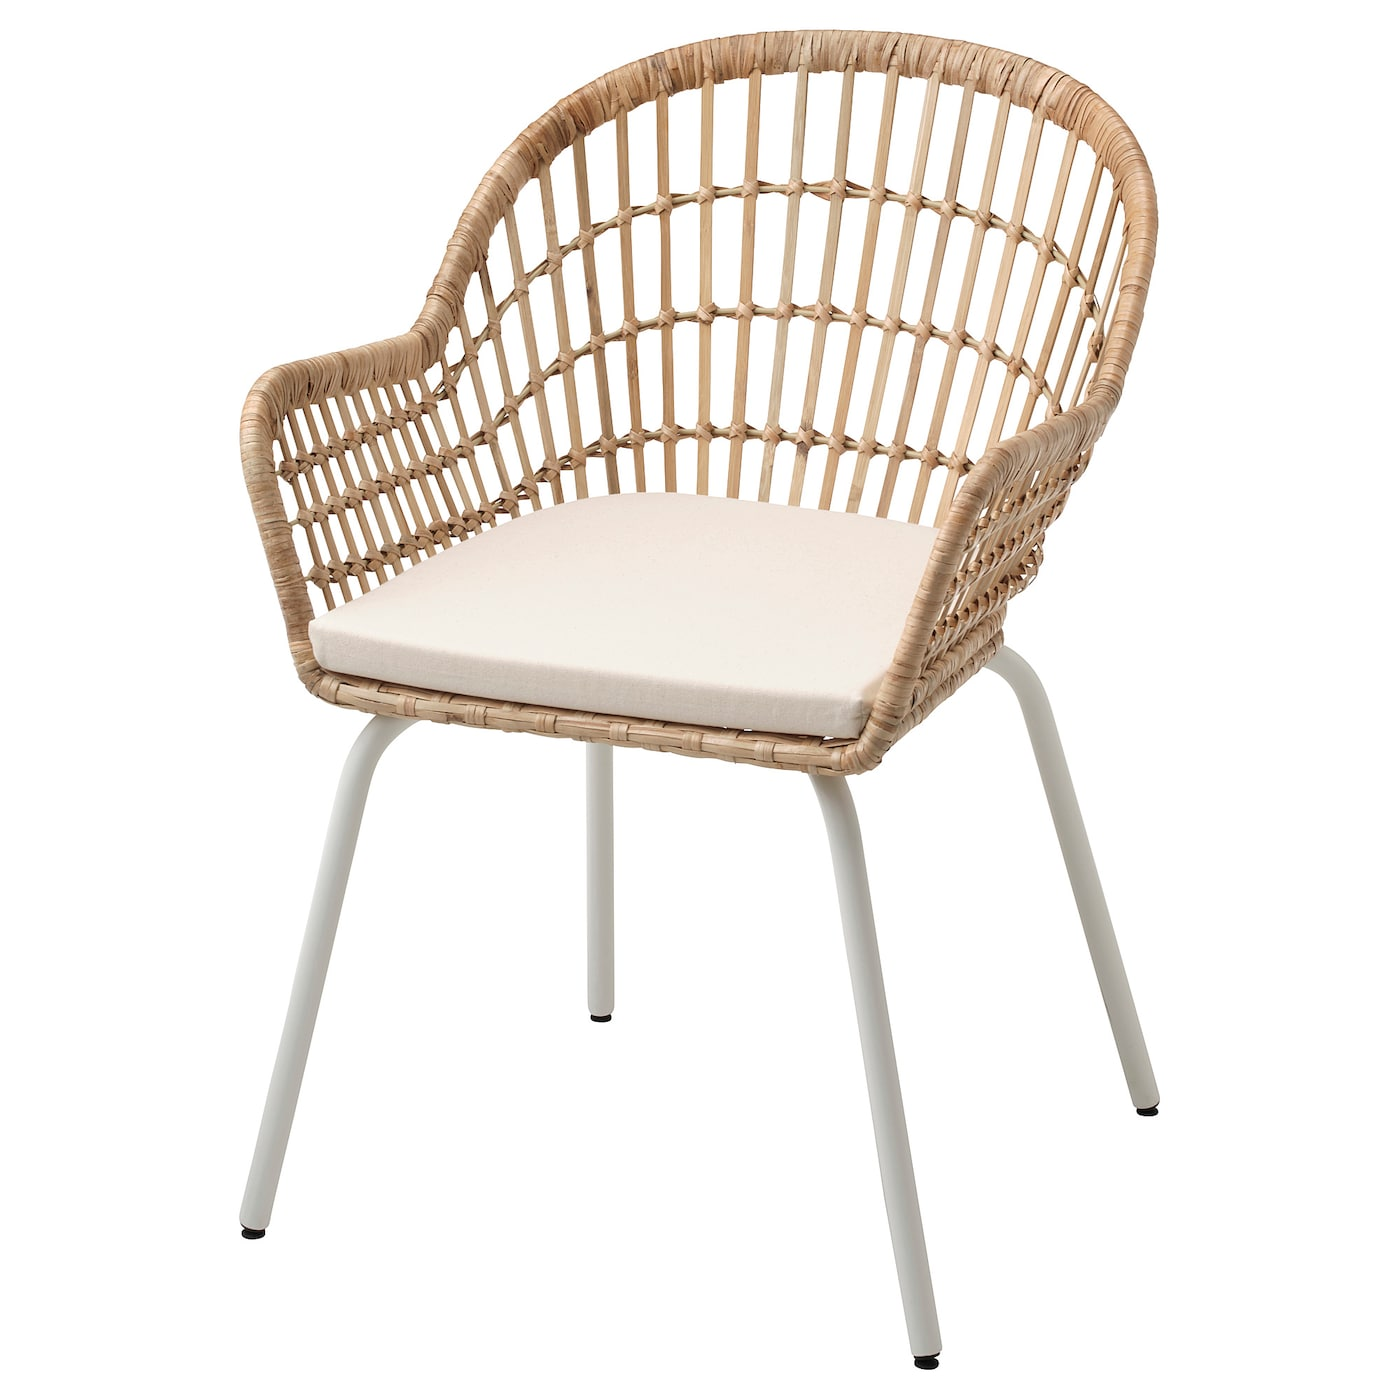 IKEA NORNA/NILSOVE chair with chair pad